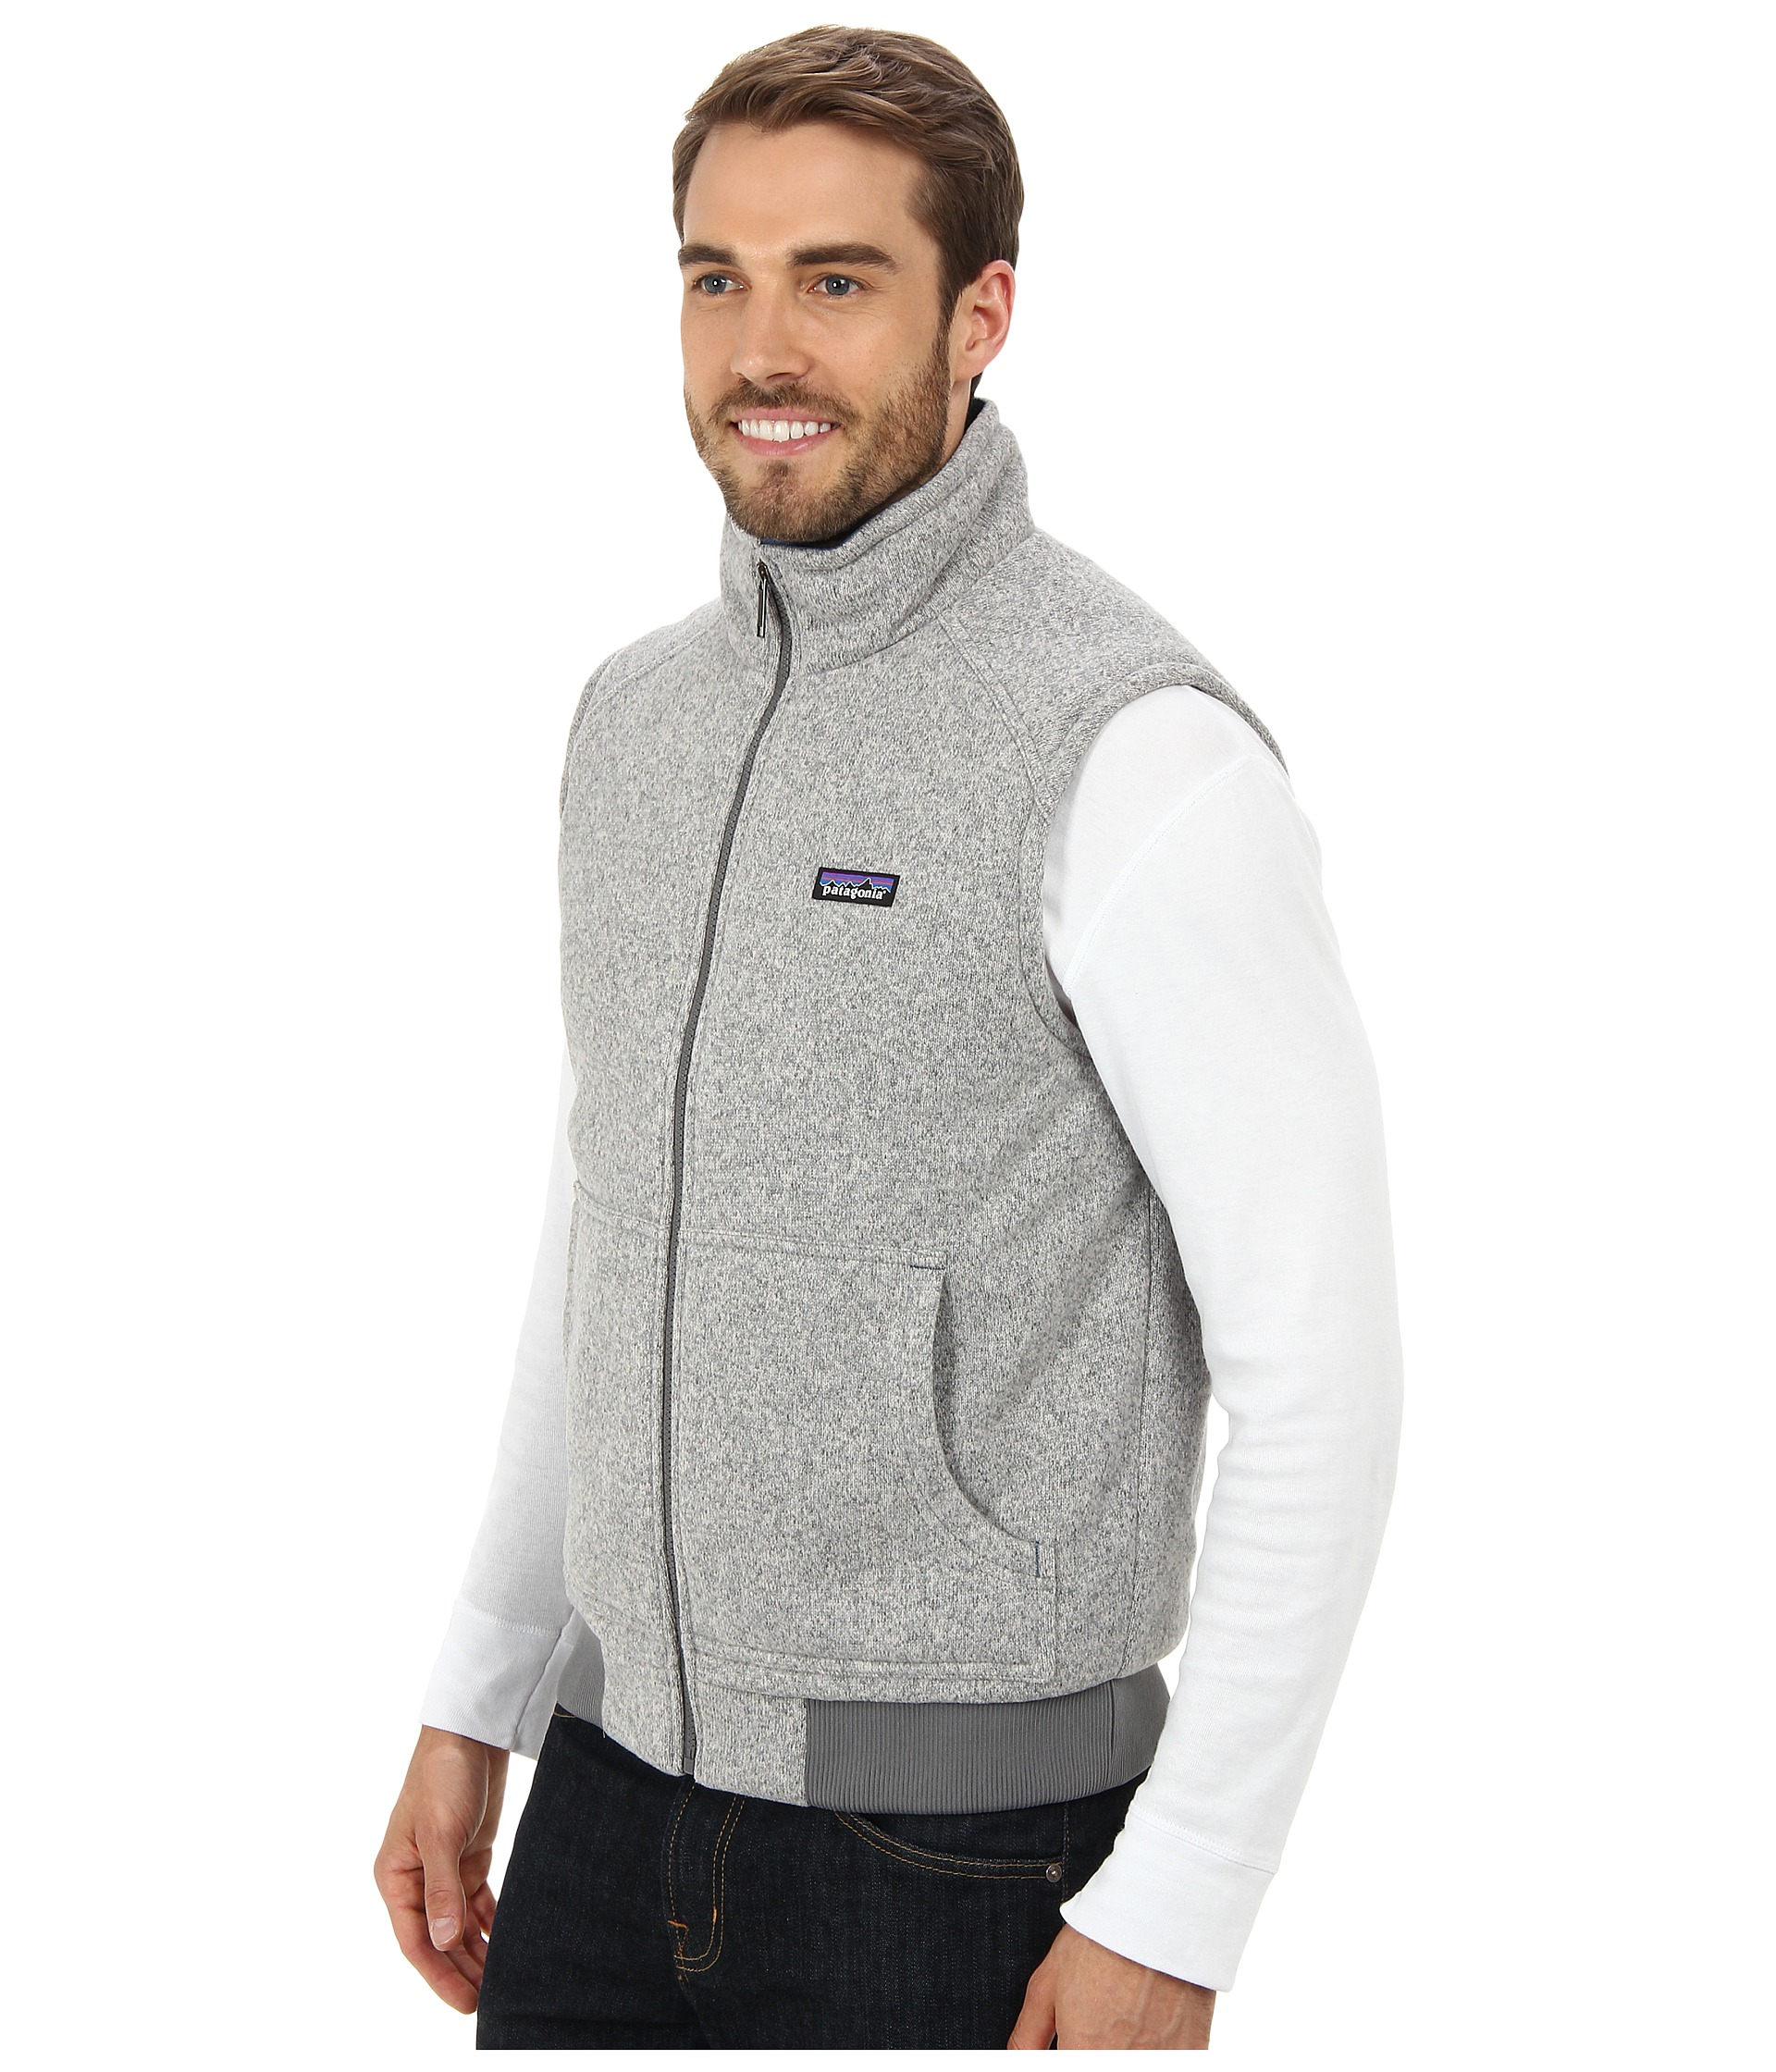 Zappos Better Sweater Vest 90